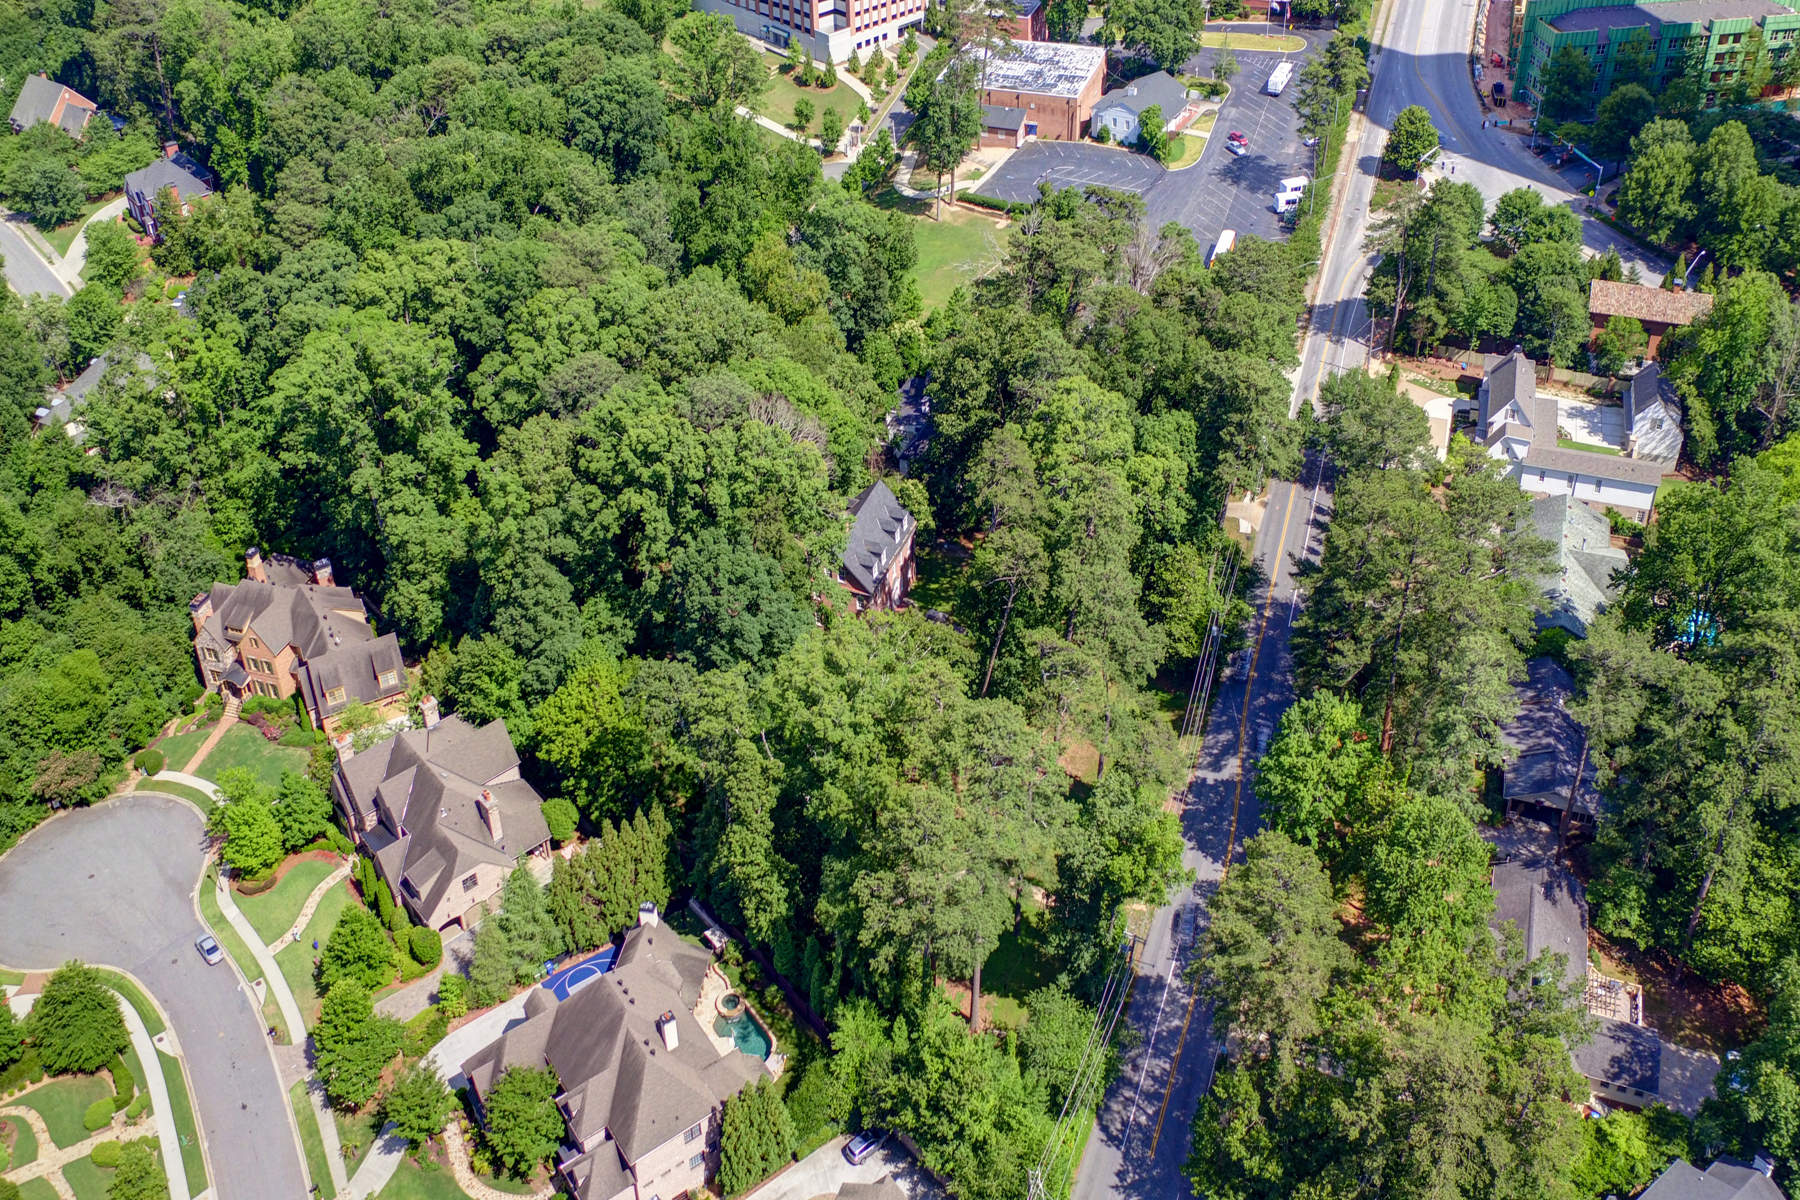 Land for Sale at 3.3 Acre Buckhead Estate 3745 Wieuca Road Buckhead, Atlanta, Georgia, 30342 United States